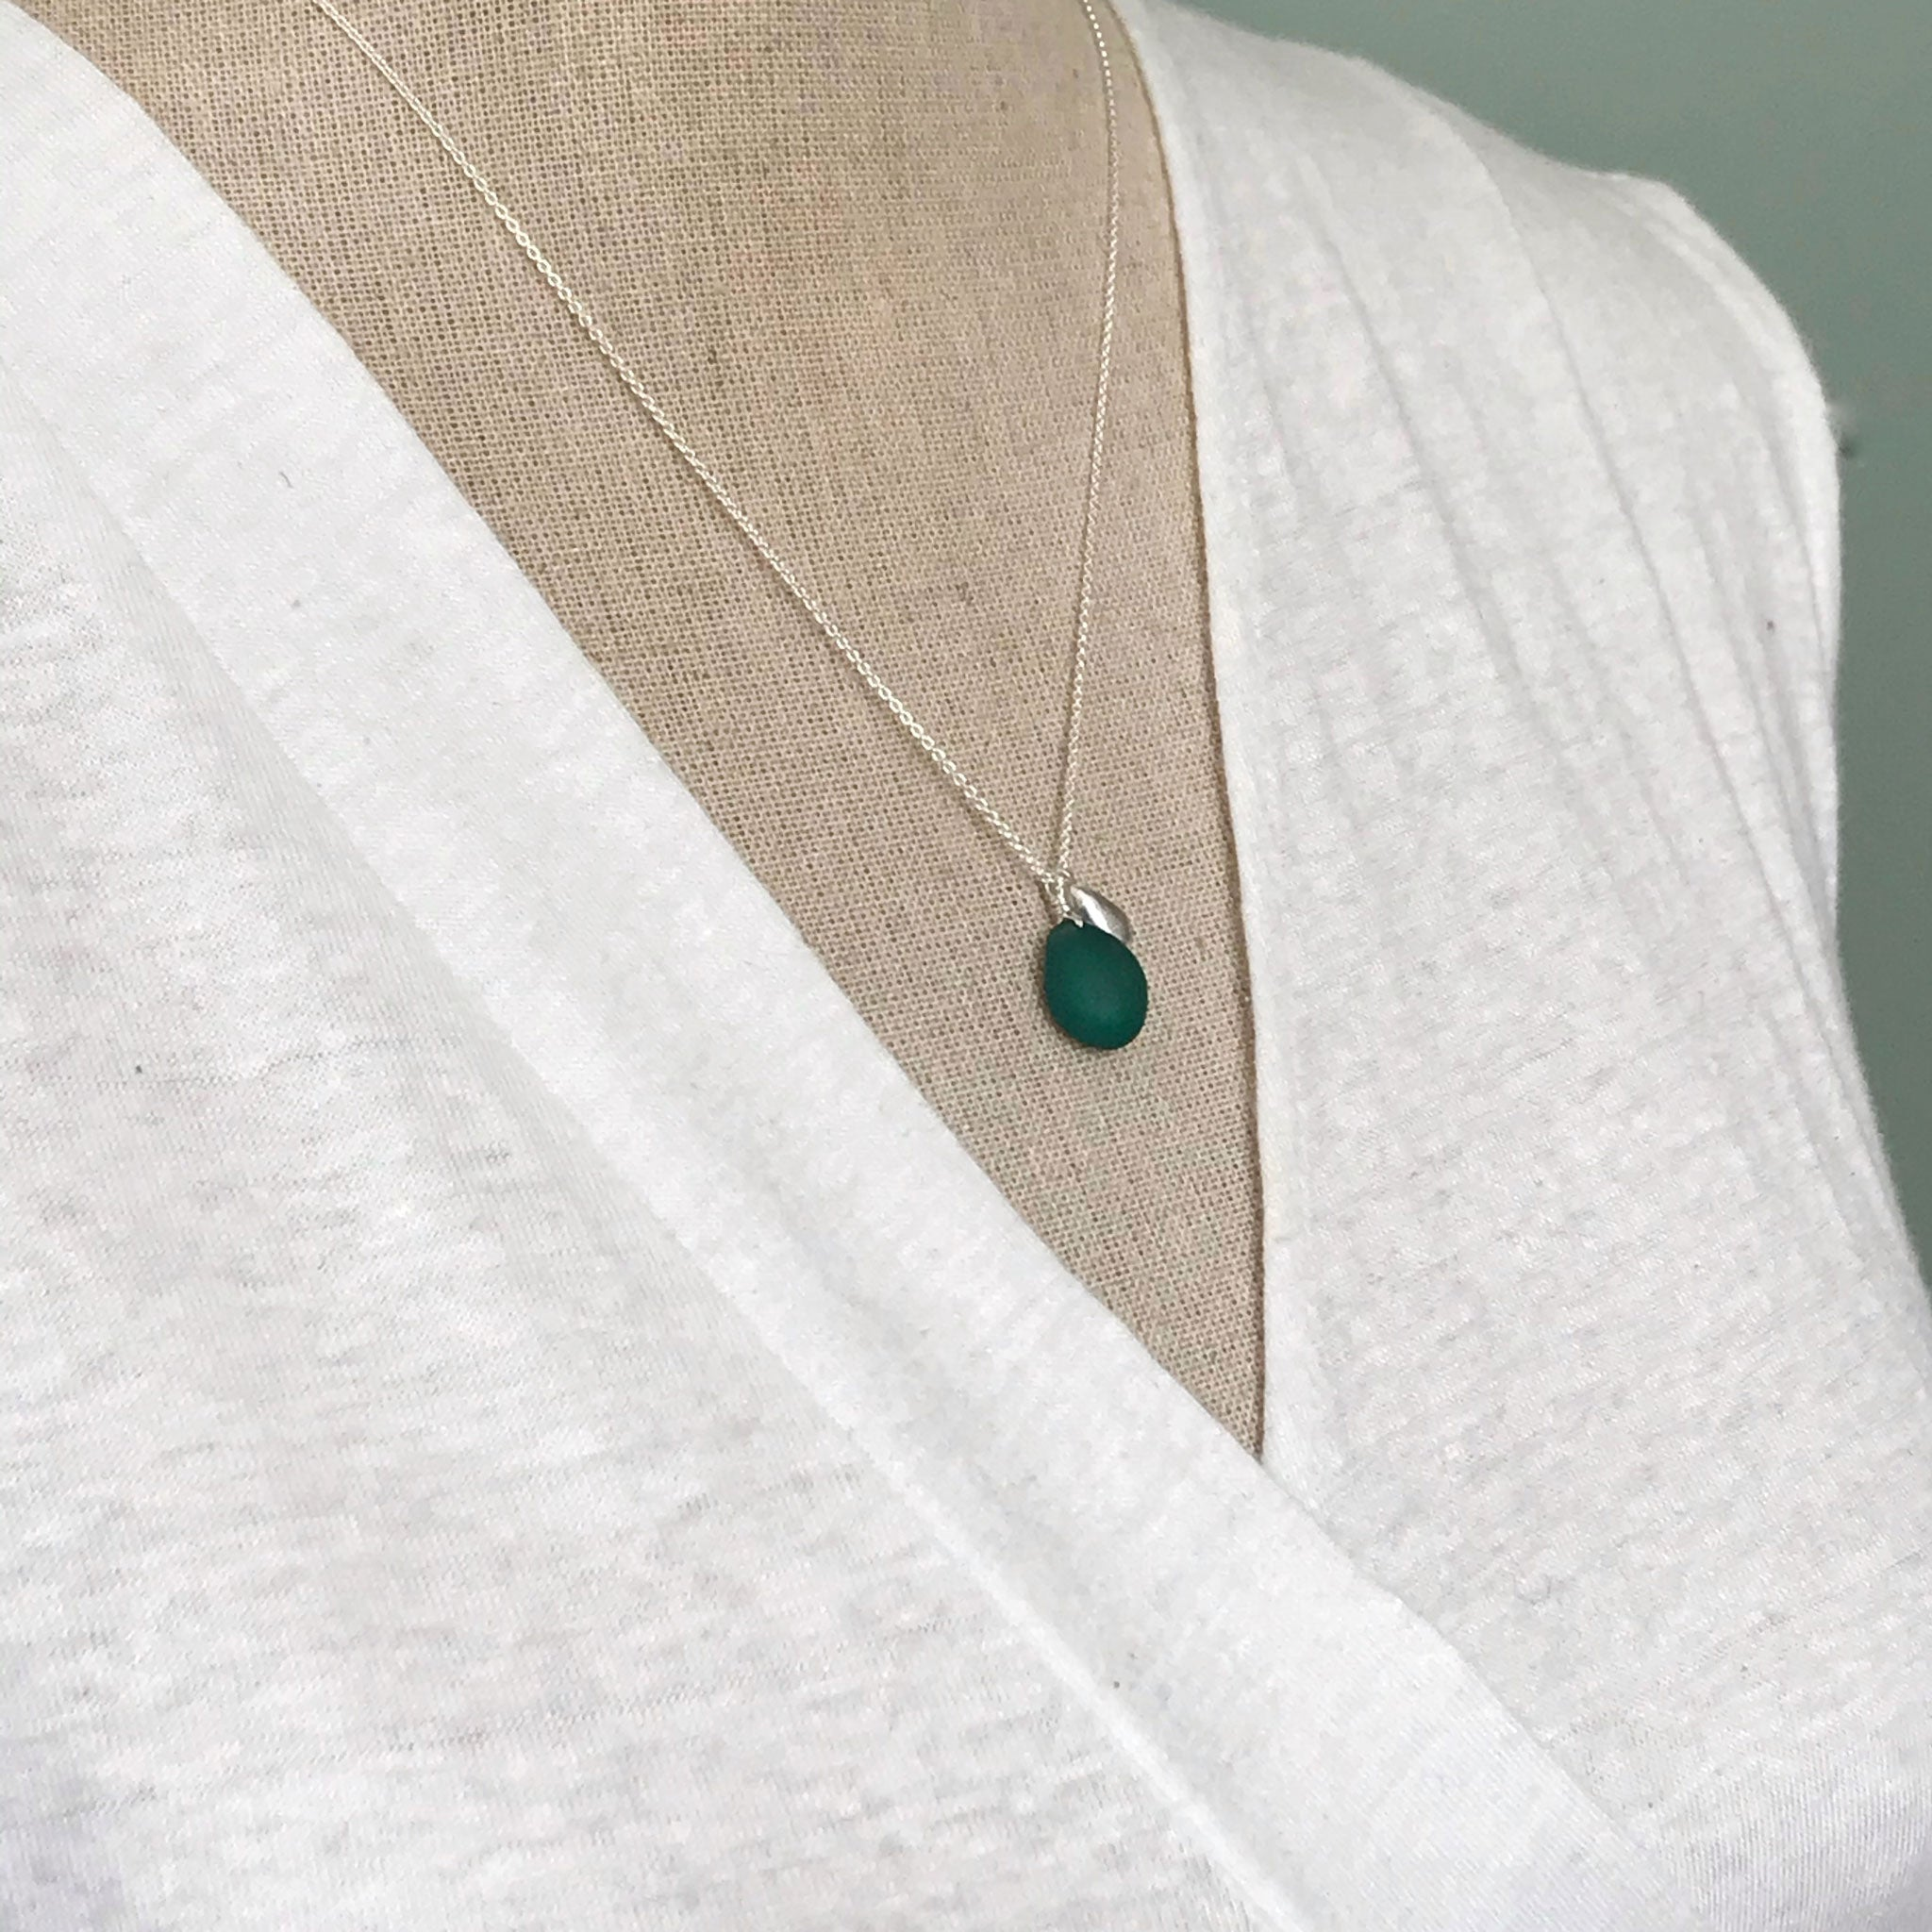 silver charm necklace with teal seaglass and solid silver teardrop charm Kriket Broadhurst jewellery Australian Made